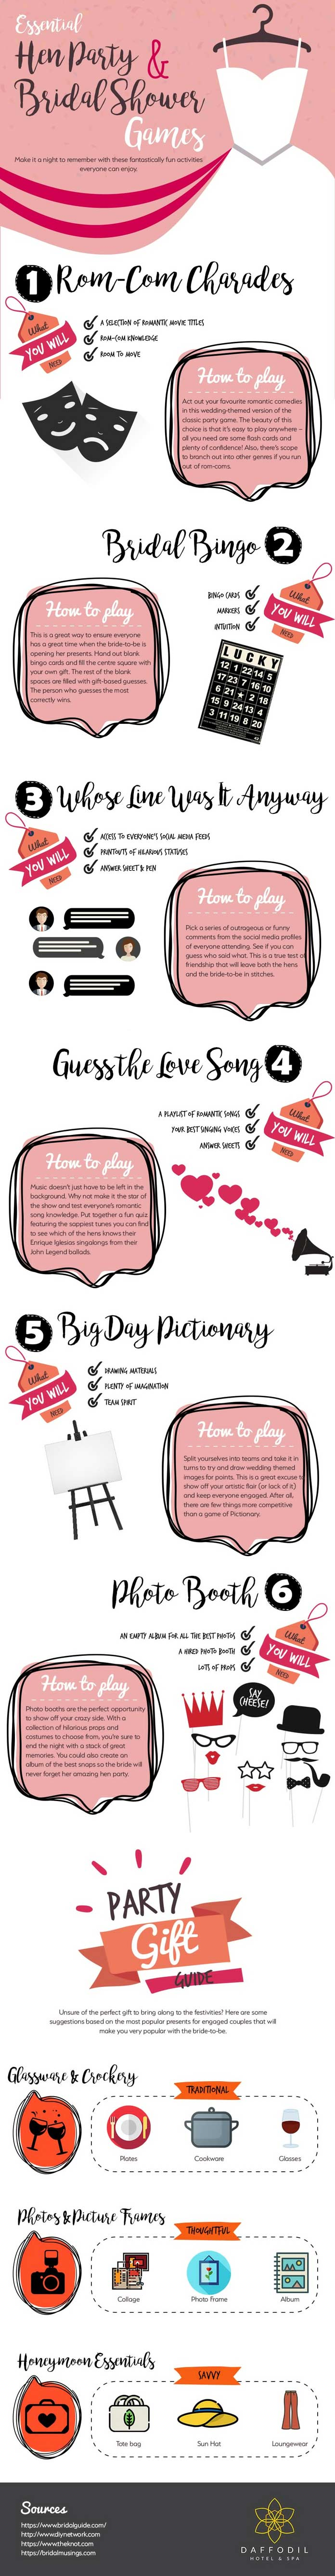 Essential Bridal Shower & Hen Party Games